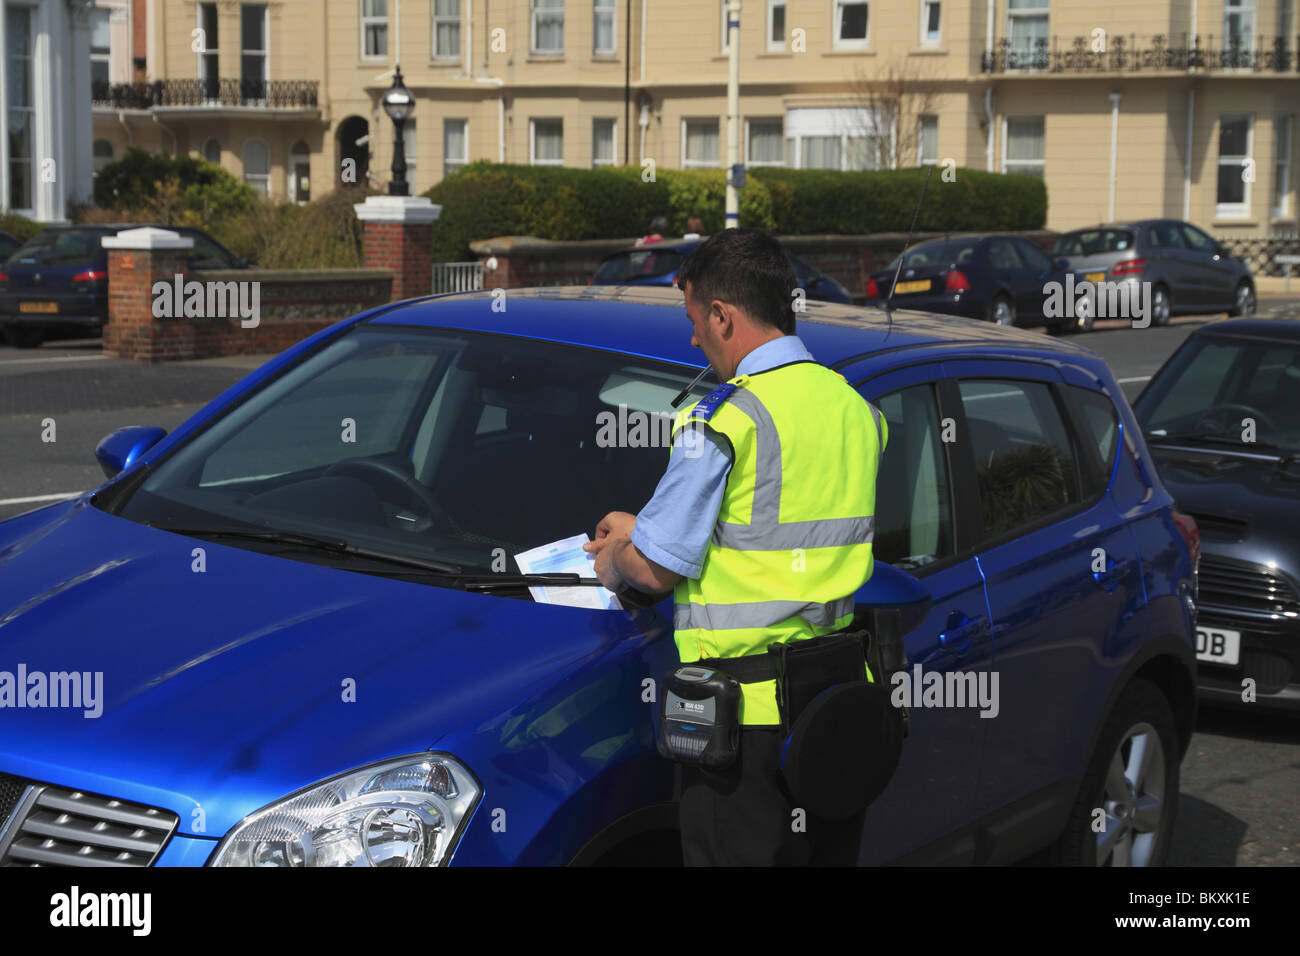 A car parking attendant fines a motorist for parking without a valid ticket at Eastbourne, East Sussex, England. - Stock Image